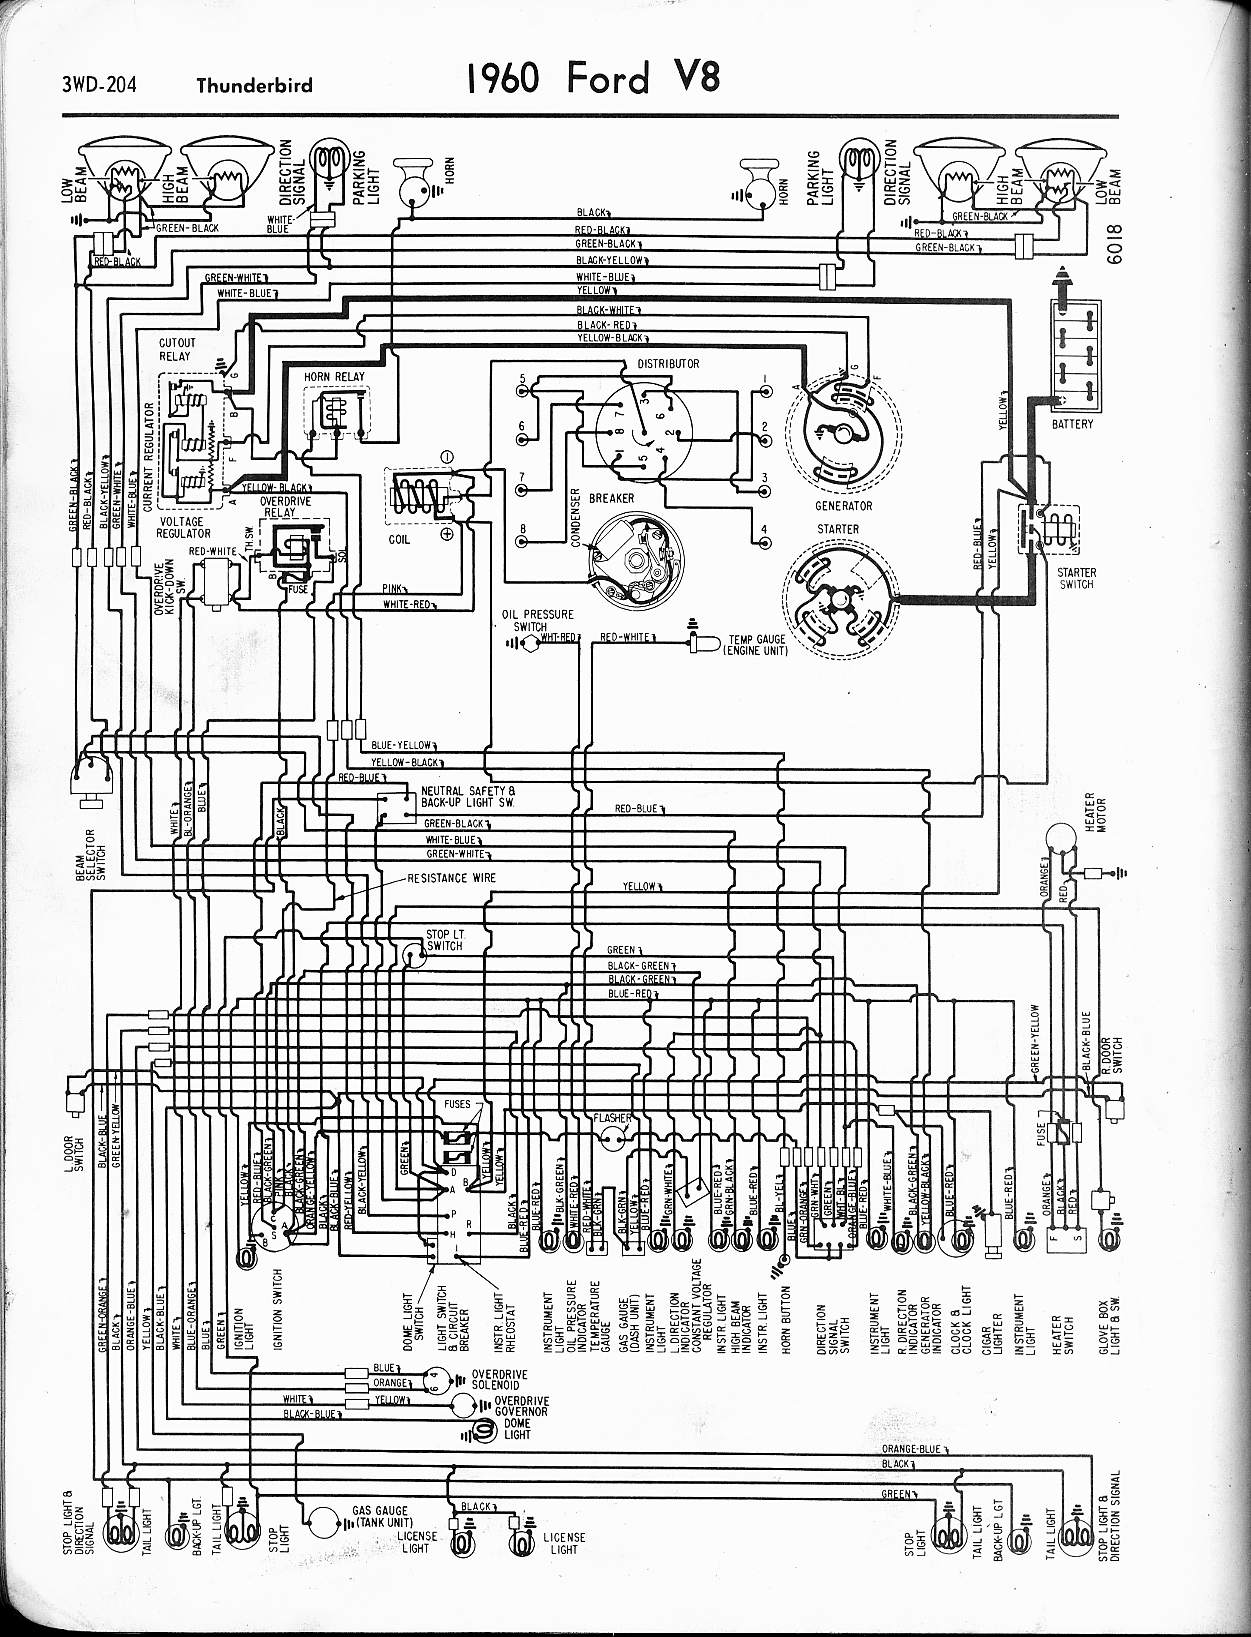 1965 Ford Galaxie 500 Vacuum Diagram Diy Enthusiasts Wiring Diagrams 1969 Fairlane 1964 Thunderbird Schematic Rh Ogmconsulting Co 1963